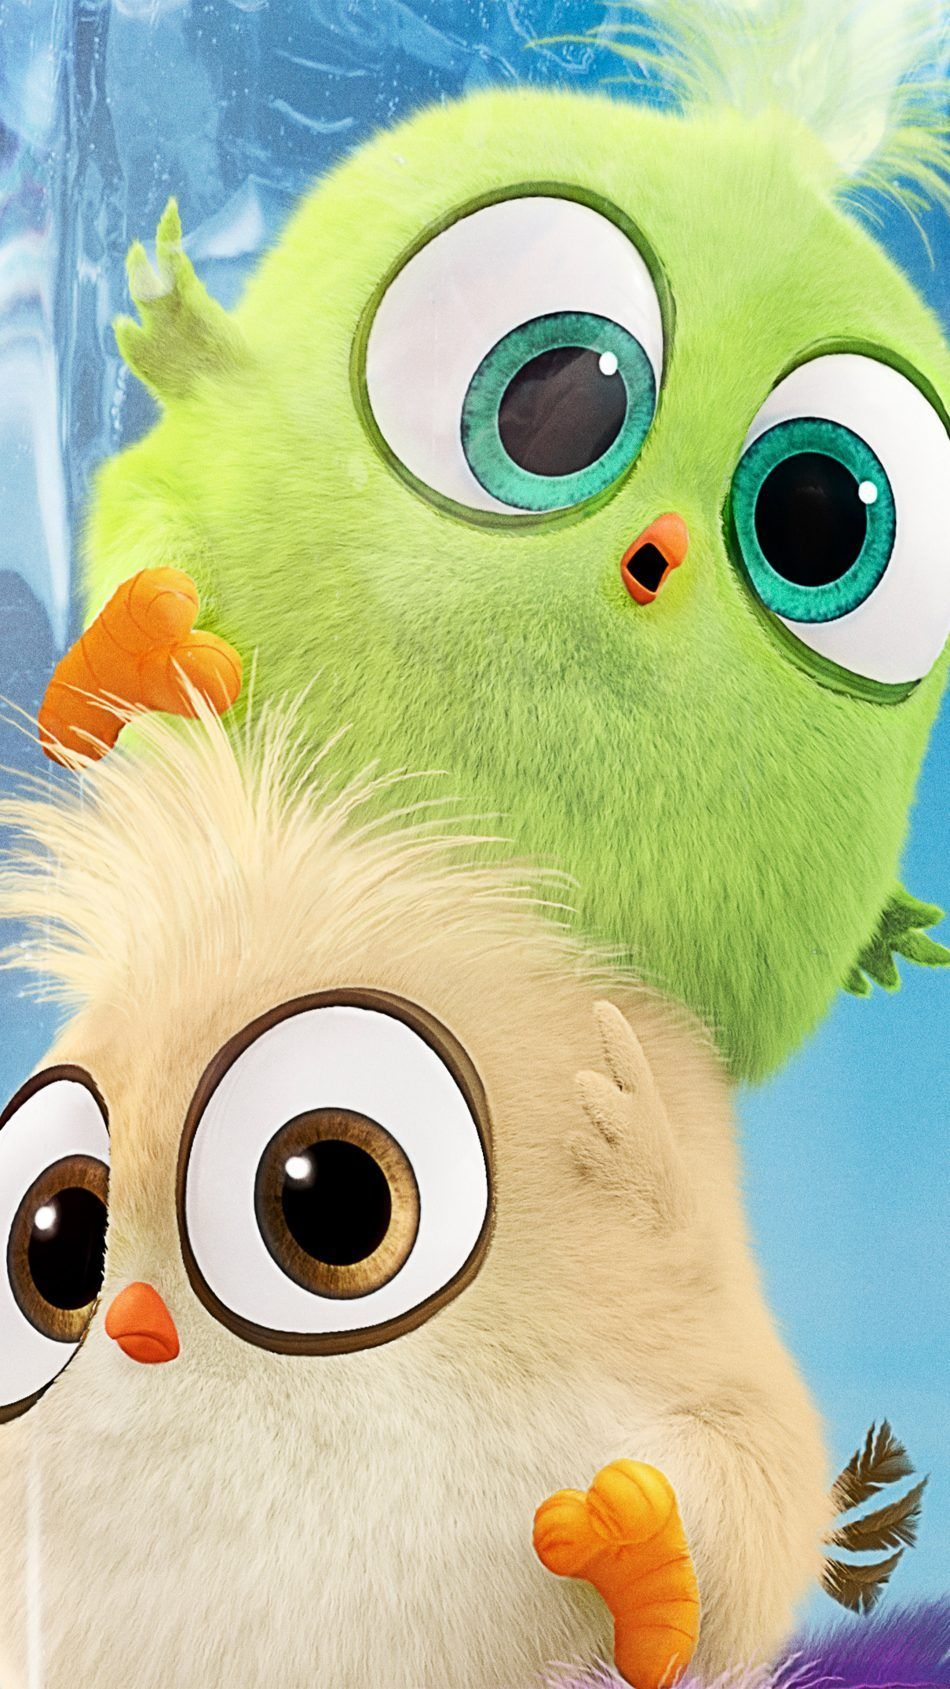 Le Angry Birds Hatchlings Movie 2 In 2020 Wallpaper Iphone Cute Cute Cartoon Wallpapers Download Cute Wallpapers